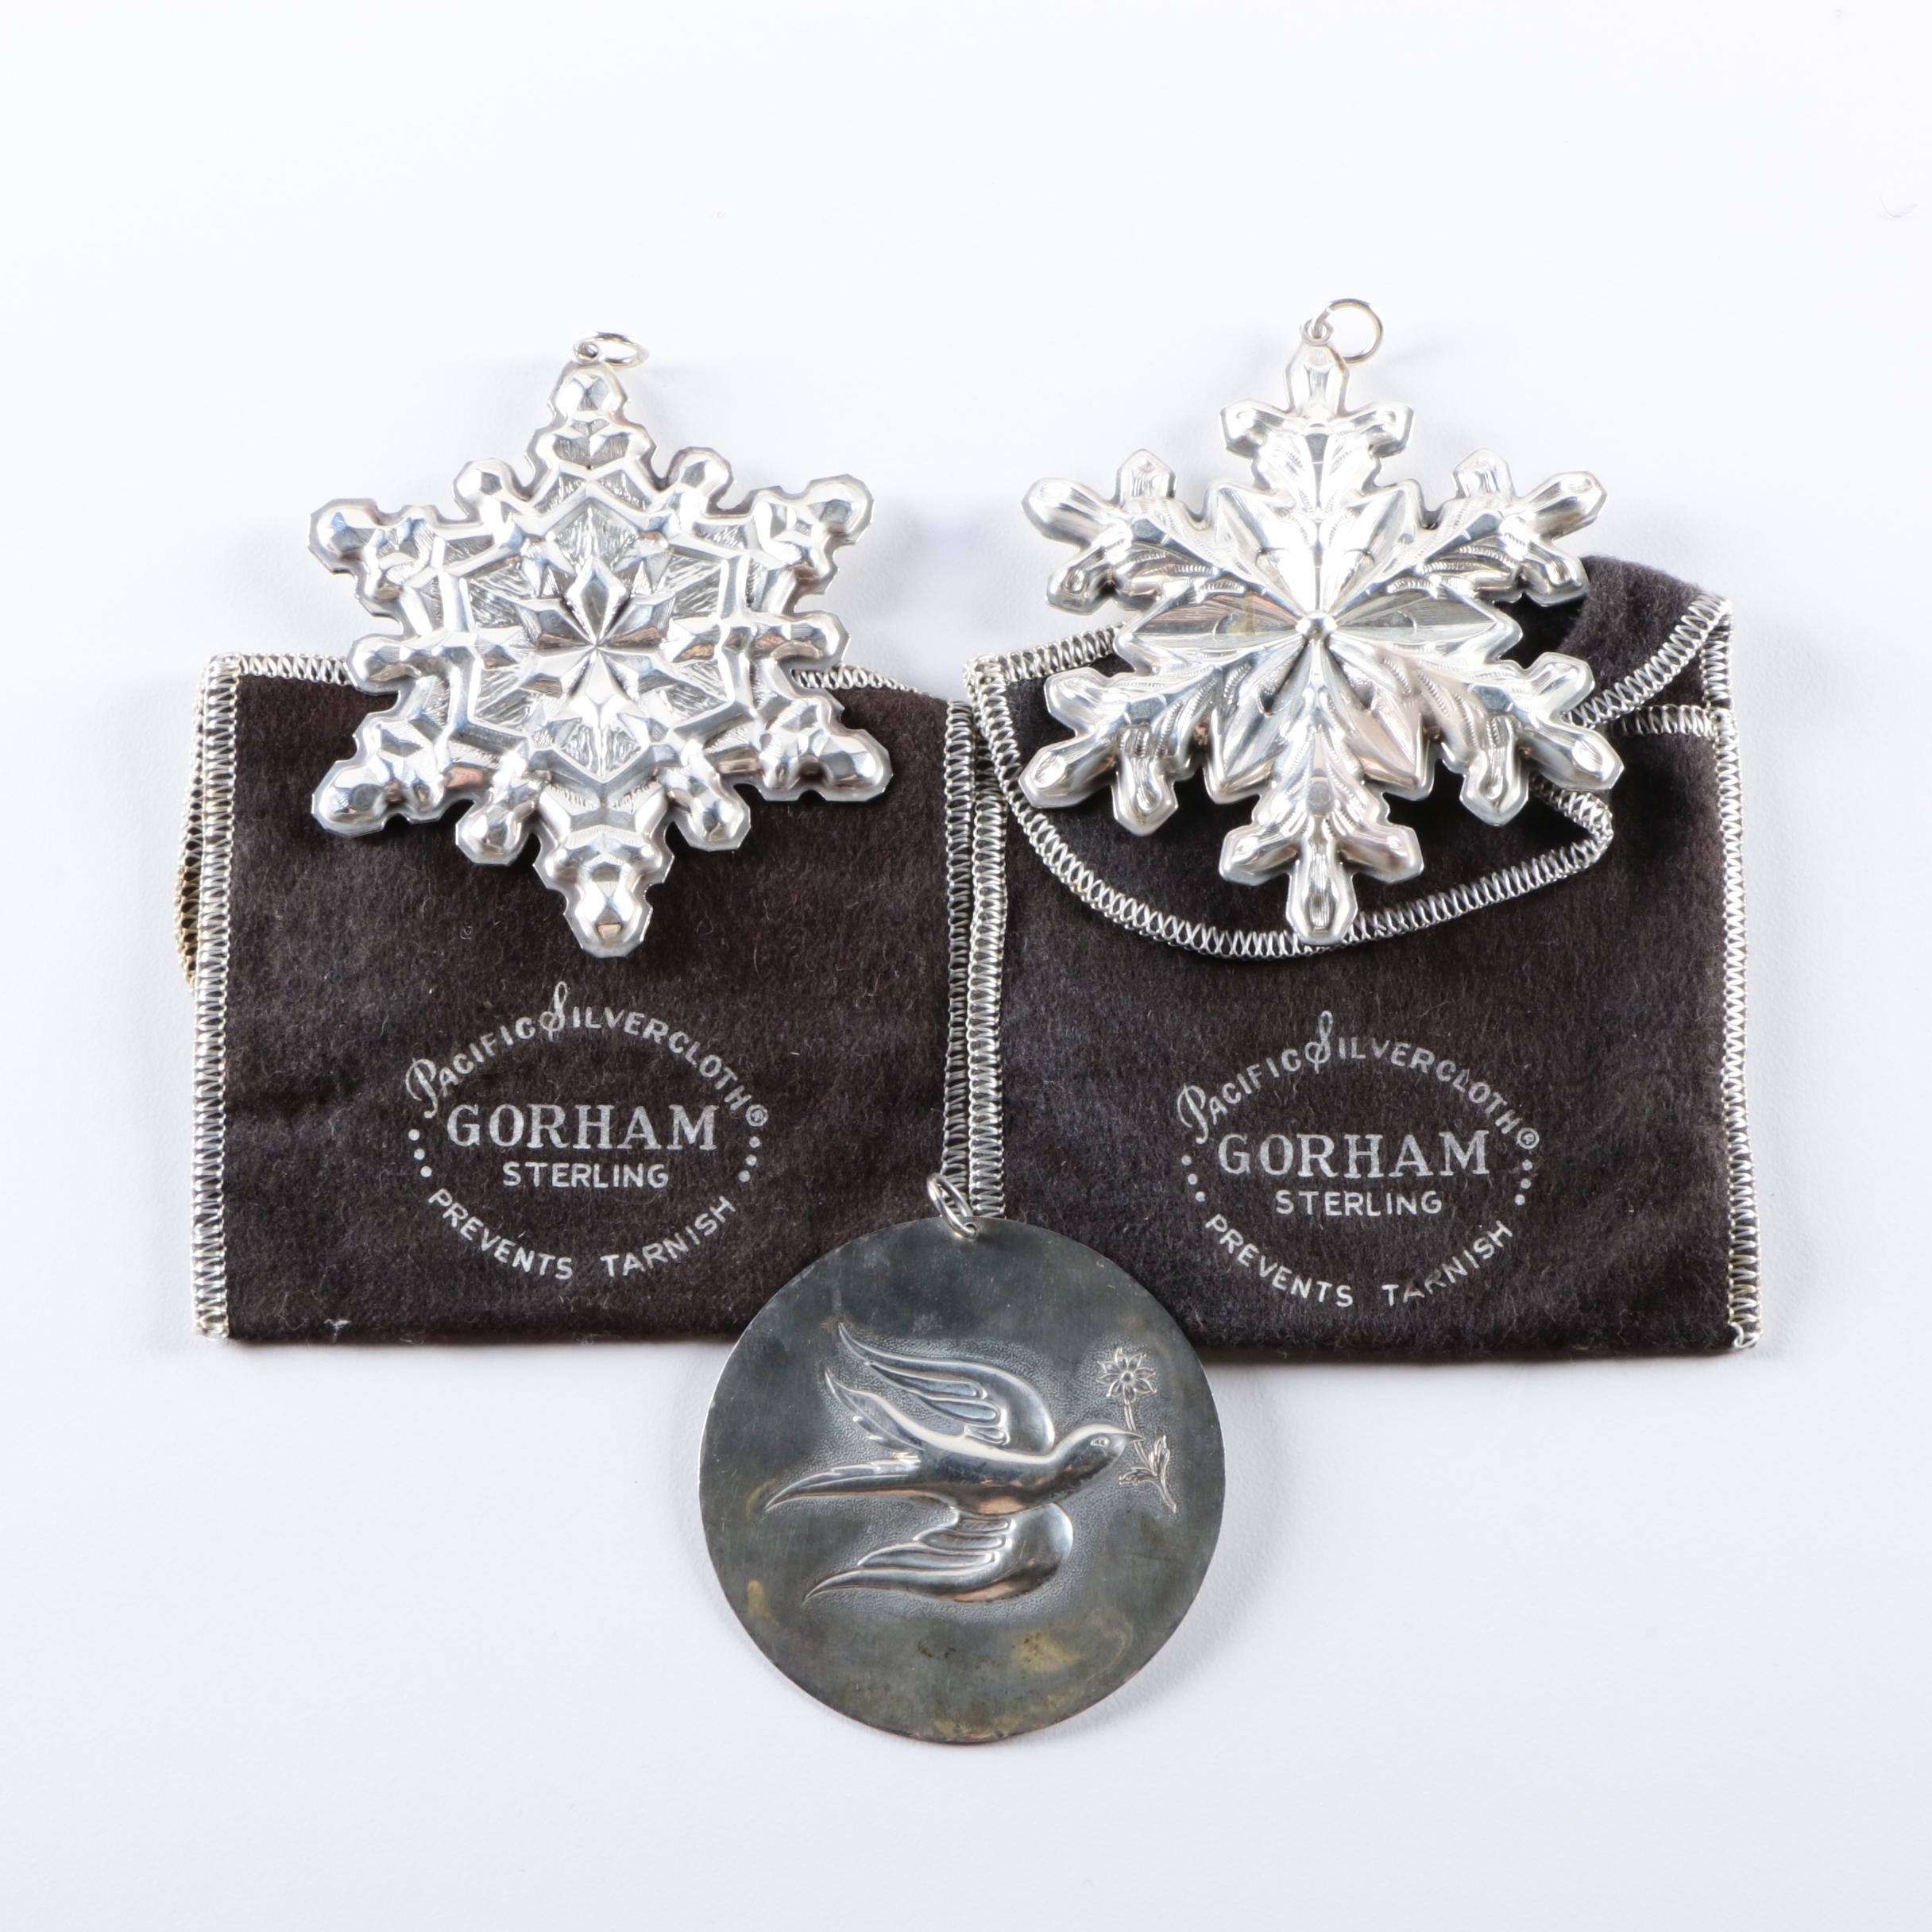 Collection of Vintage Sterling Silver Ornaments Featuring Gorham